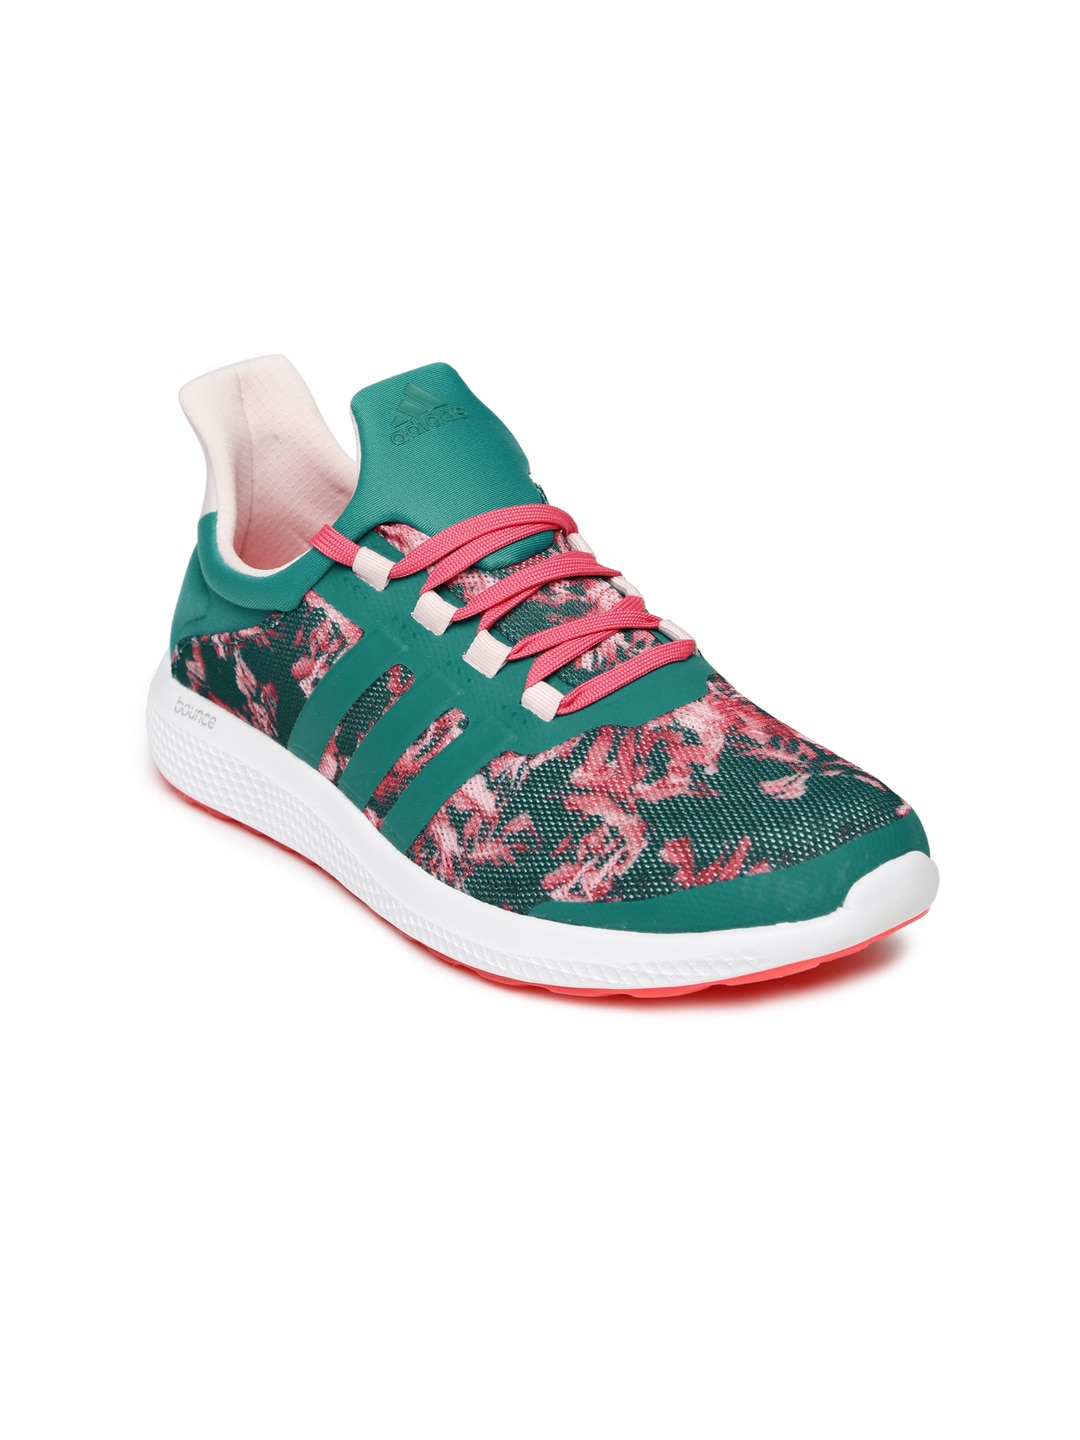 dc581028a Adidas s78254 Women Green Cc Sonic Printed Running Shoes- Price in India